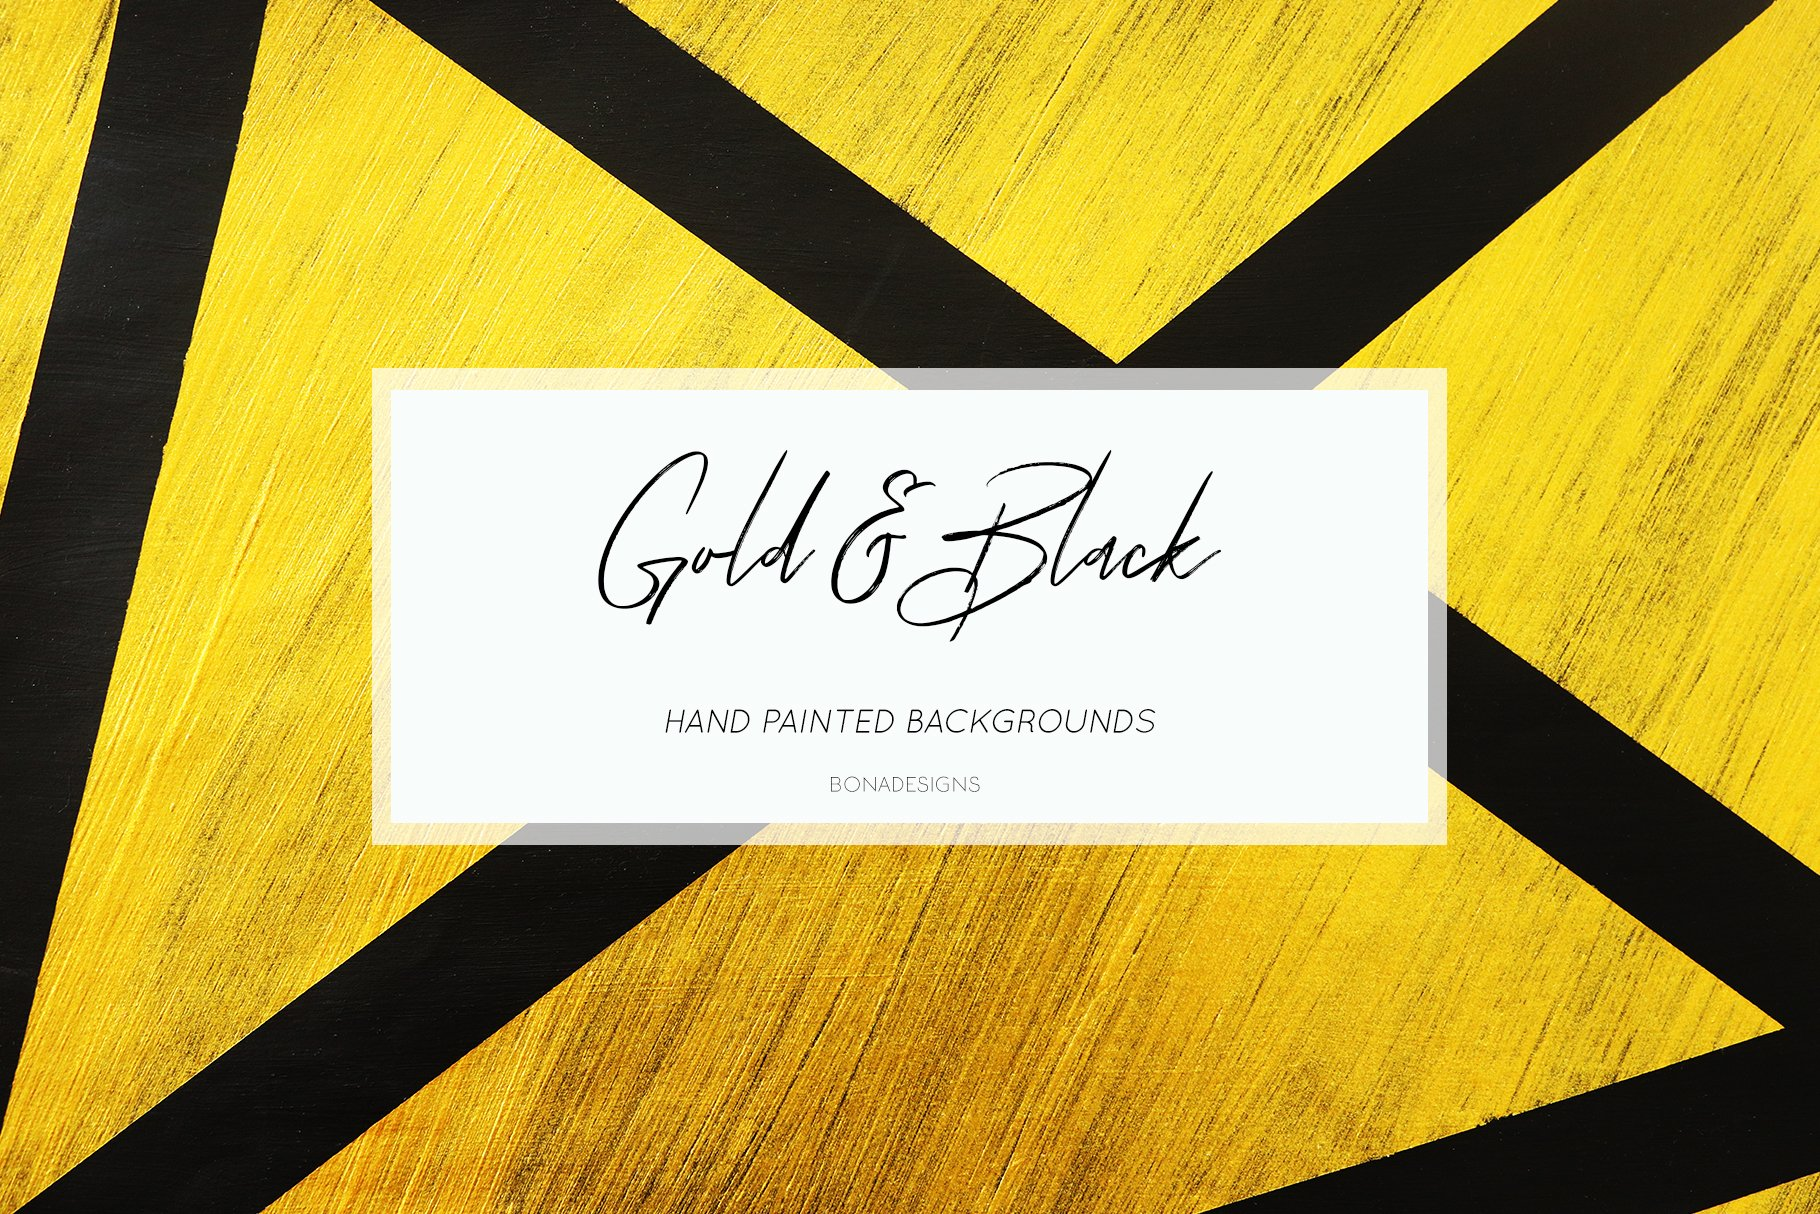 Gold Black Digital Papers Hand Painted Abstract Textures 291061 Backgrounds Design Bundles